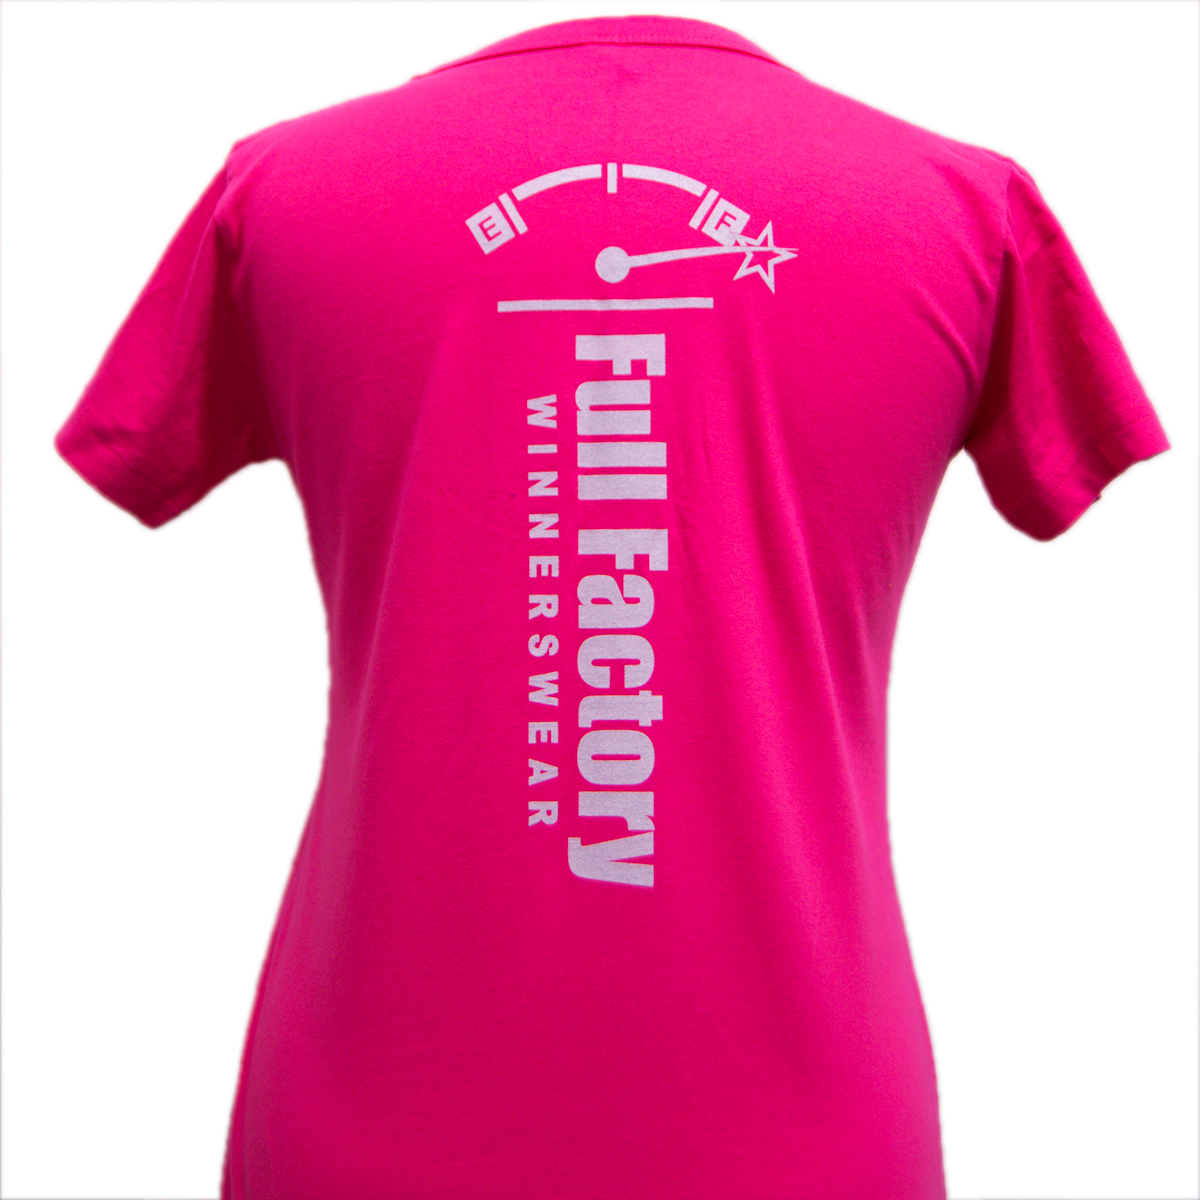 Ladies Full Factory Pink & Silver T-Shirt Image (Back)